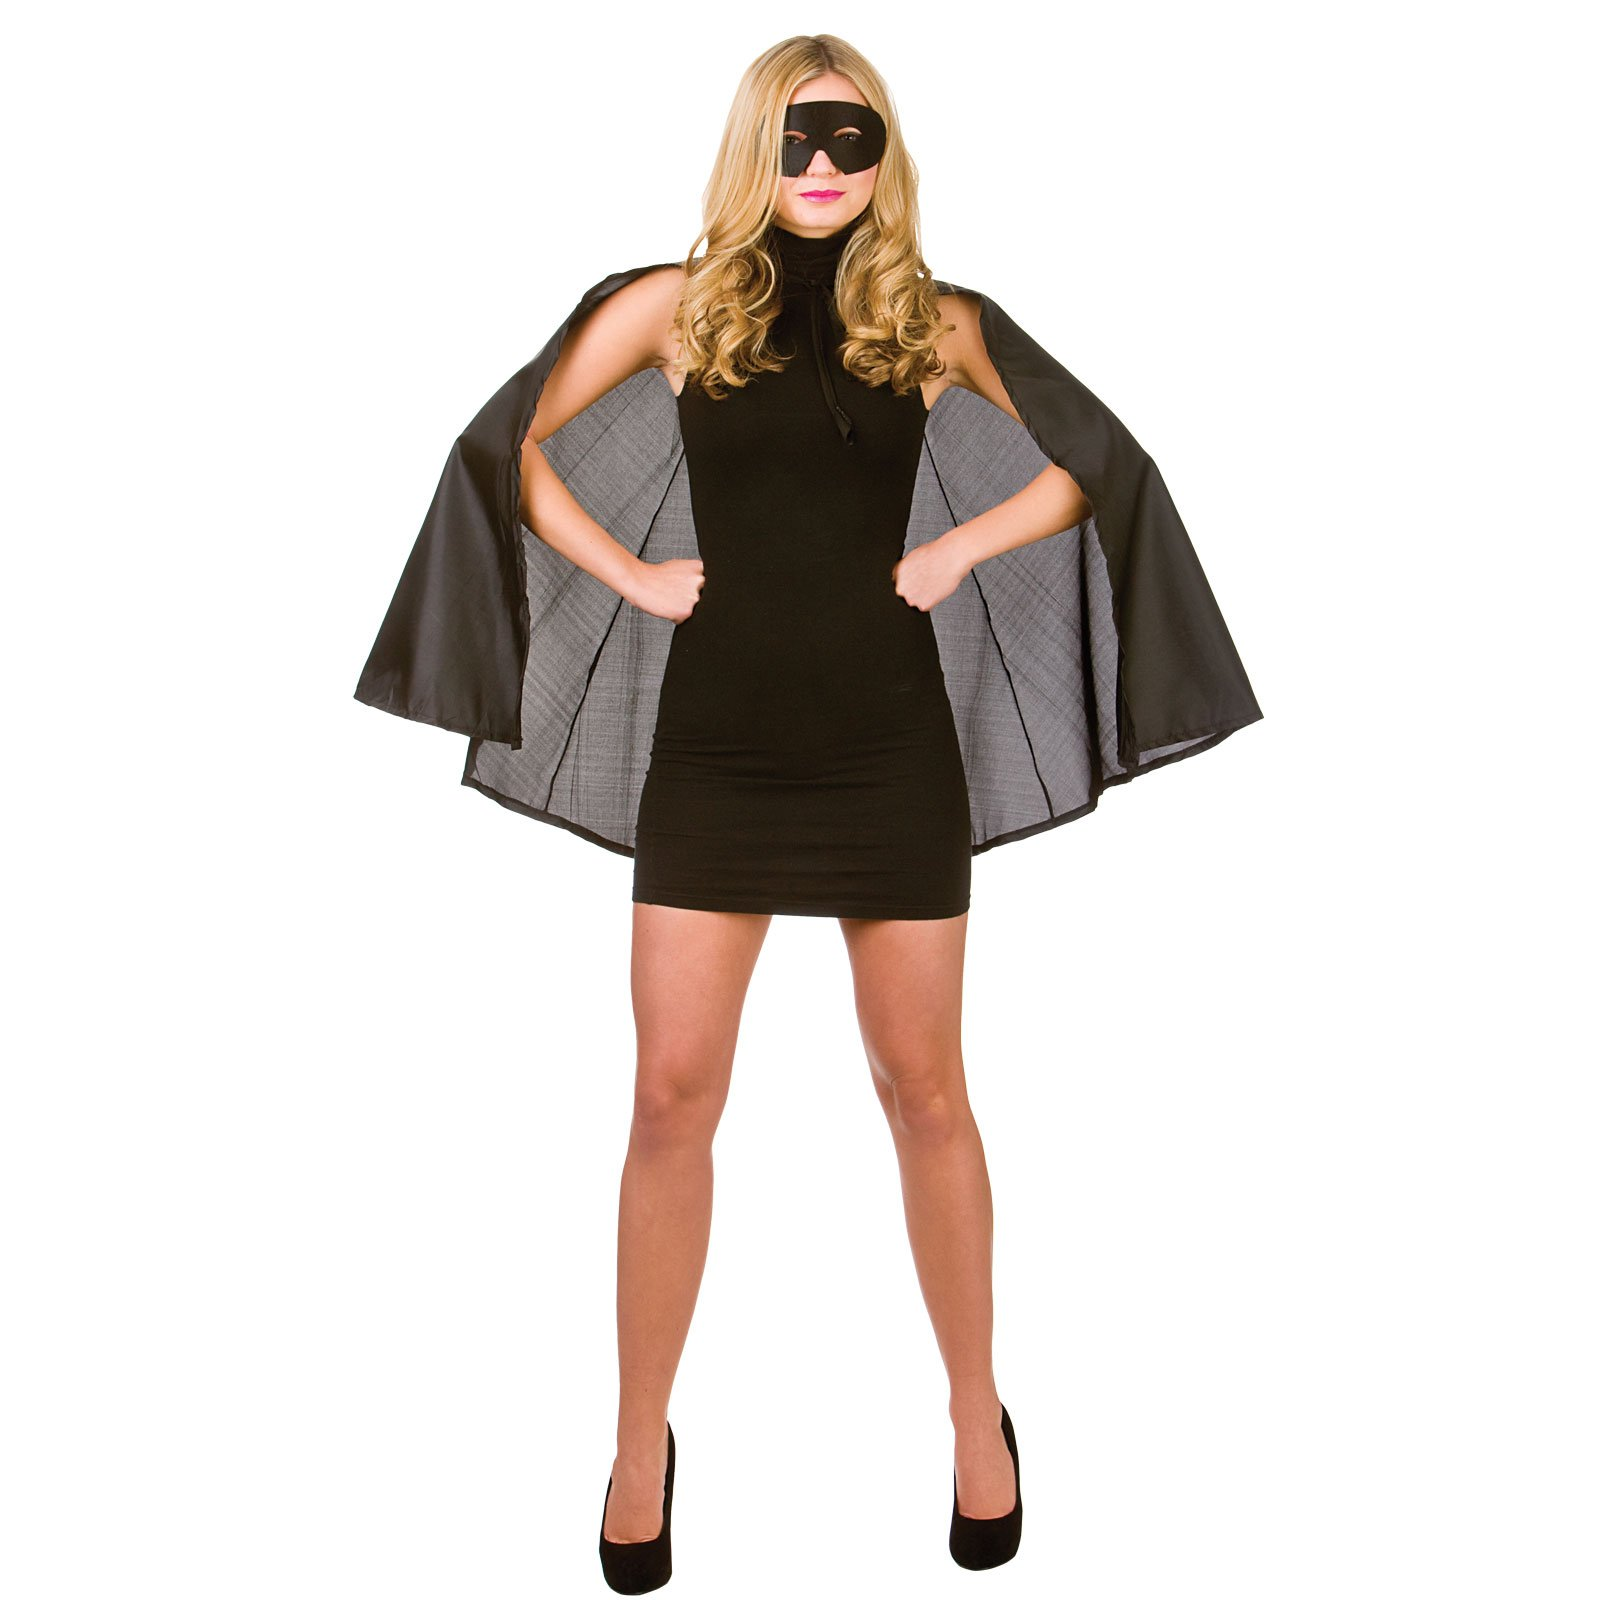 Details about SUPERHERO CAPE LADIES FANCY DRESS COSTUME HEROINE SUPER WOMAN OUTFIT + MASK  sc 1 st  Amazon UK & Female Superhero Costume: Amazon.co.uk